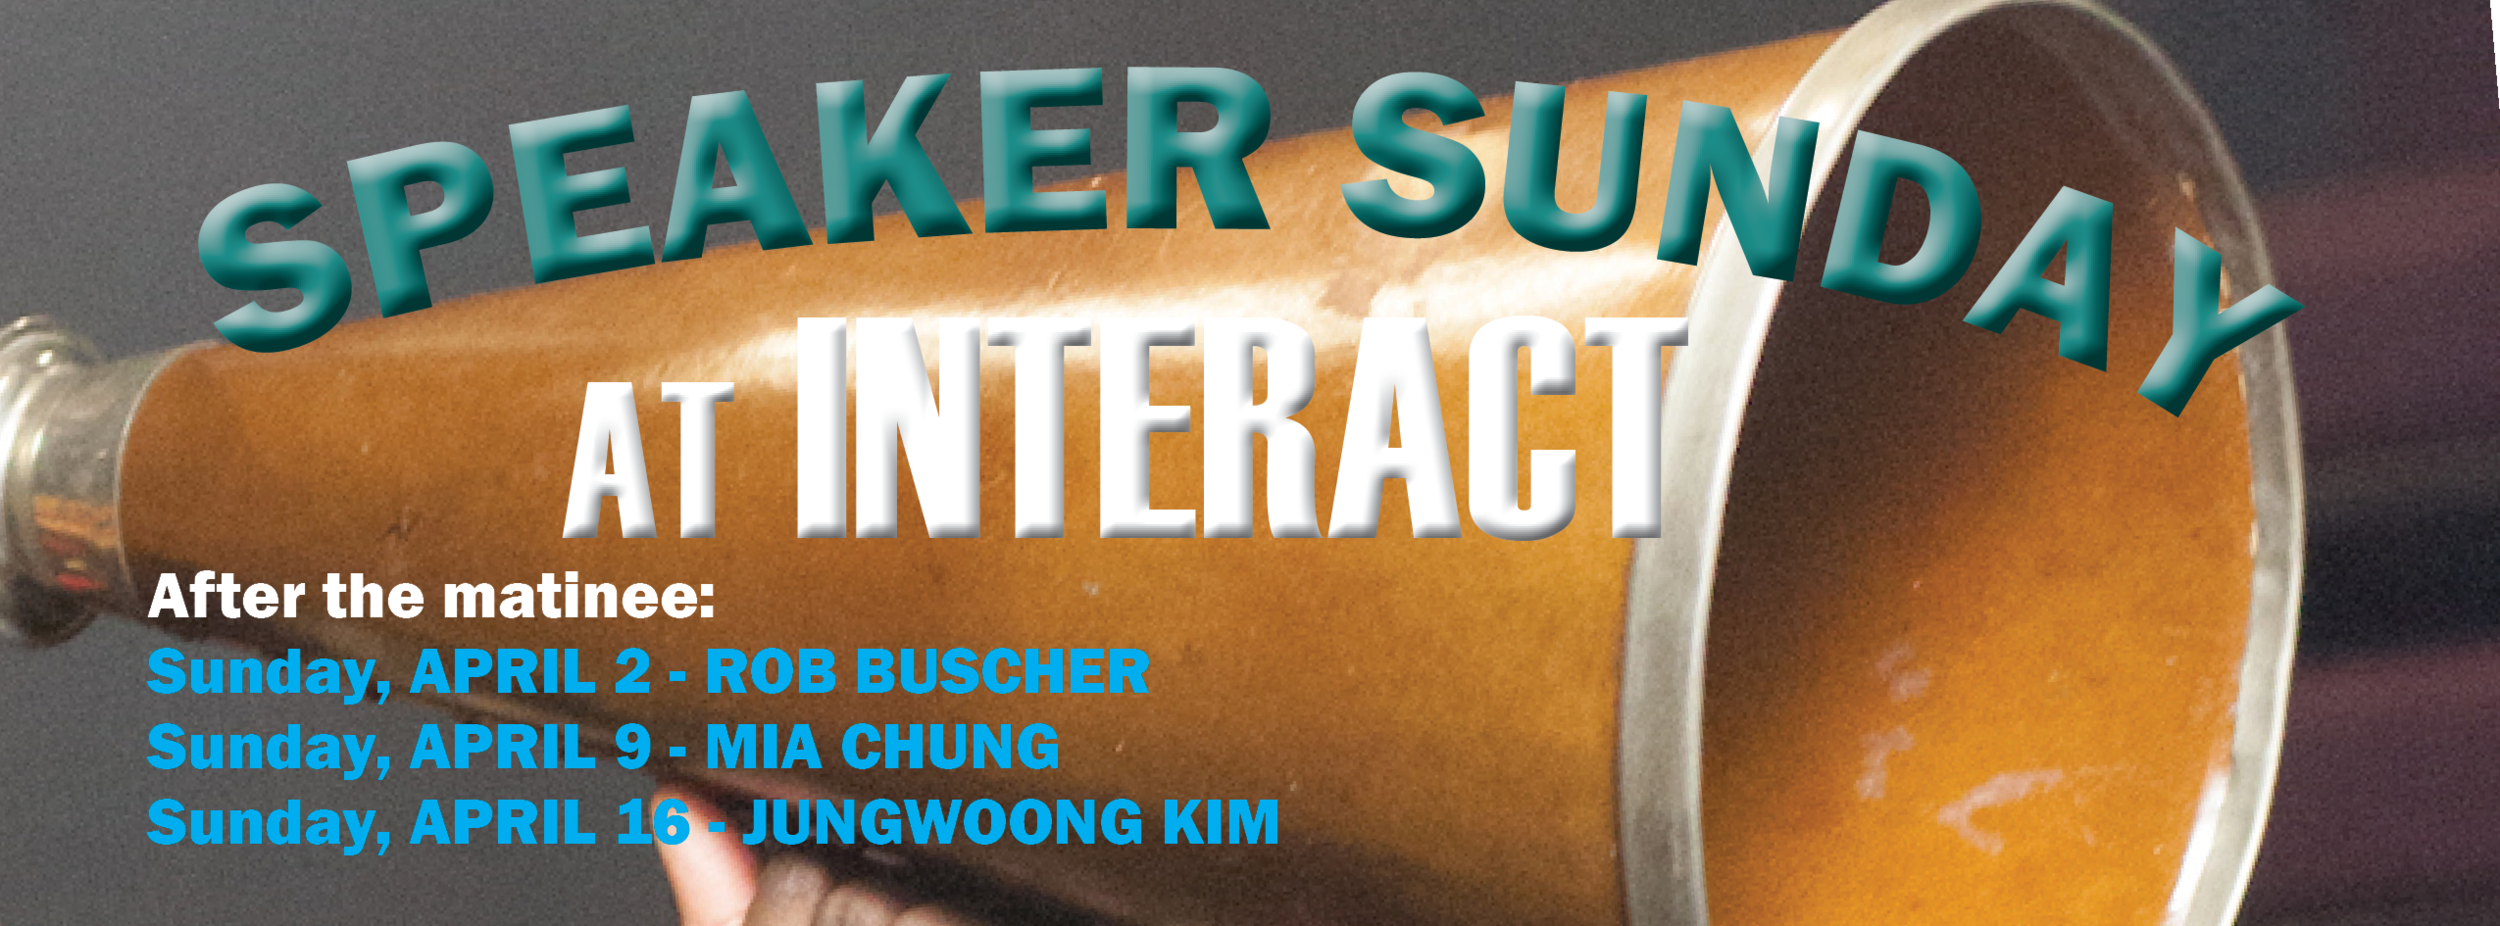 Don't miss dynamic speaker Rob Buscher, Playwright Mia Chung, and lauded choreographer Jungwoong Kim as part of our Speakers Sunday Series!